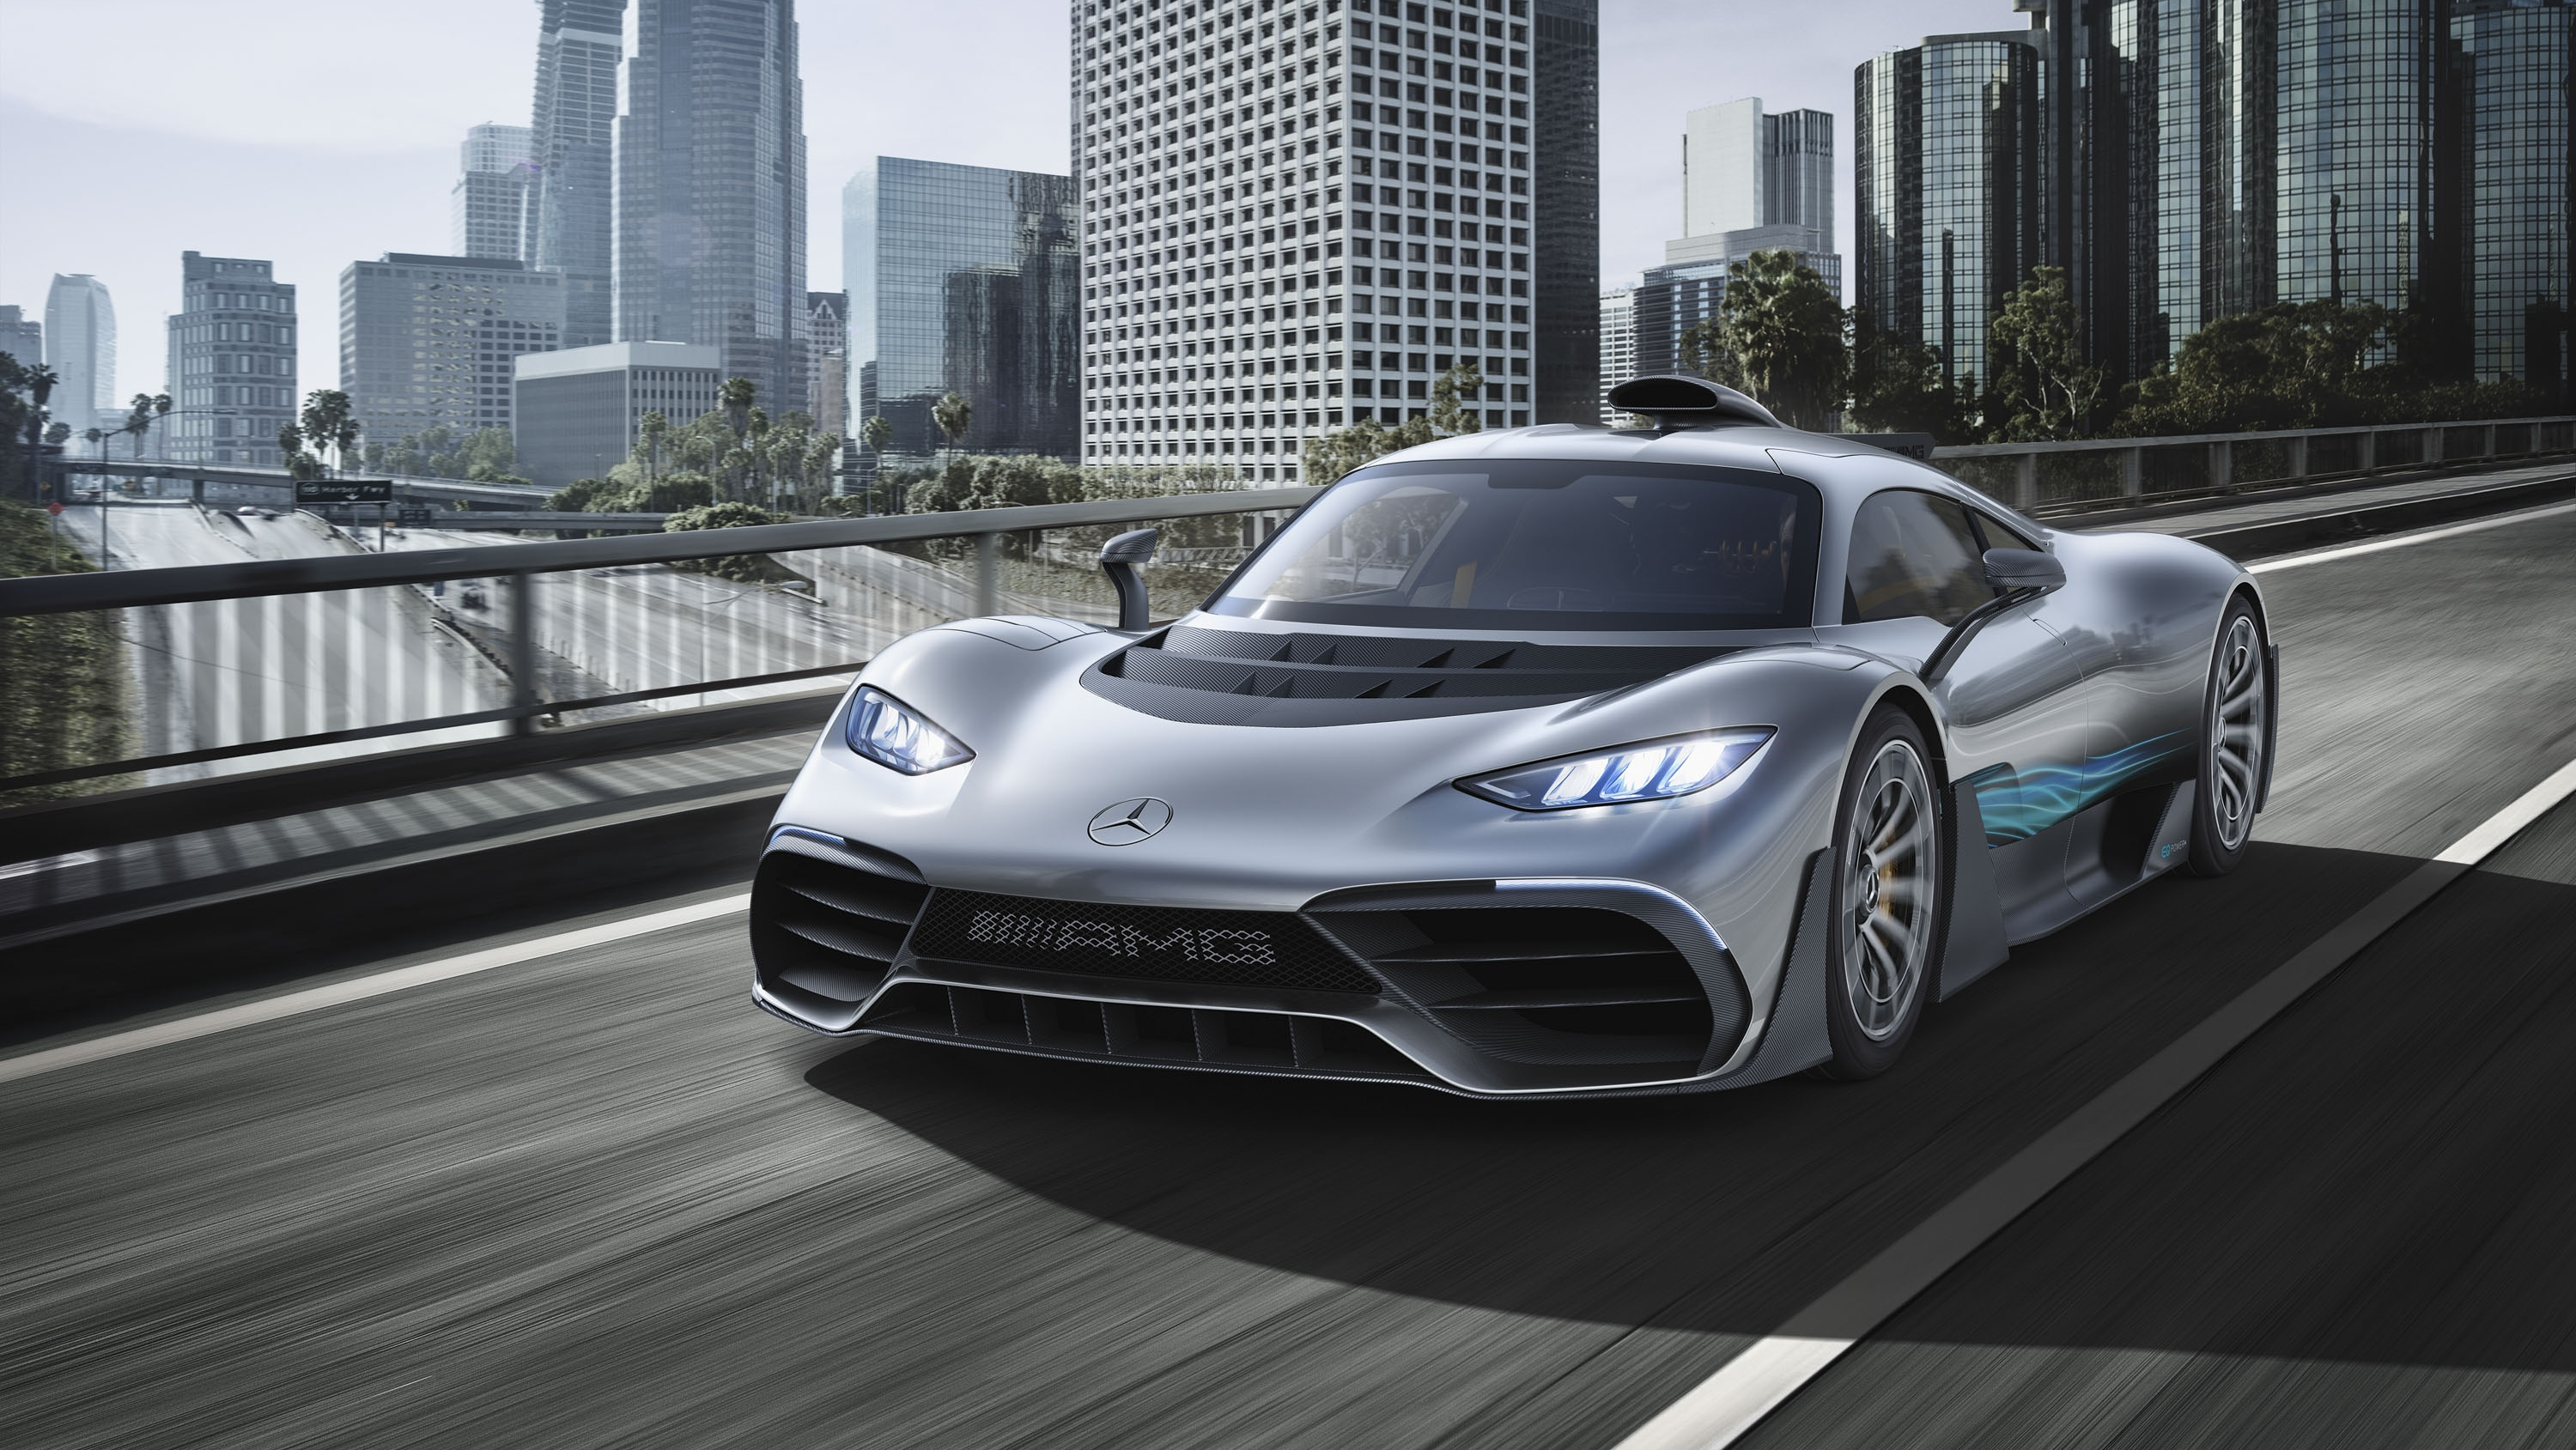 Mercedes Amg Has Big Plans For The Project One Hypercar Top Speed